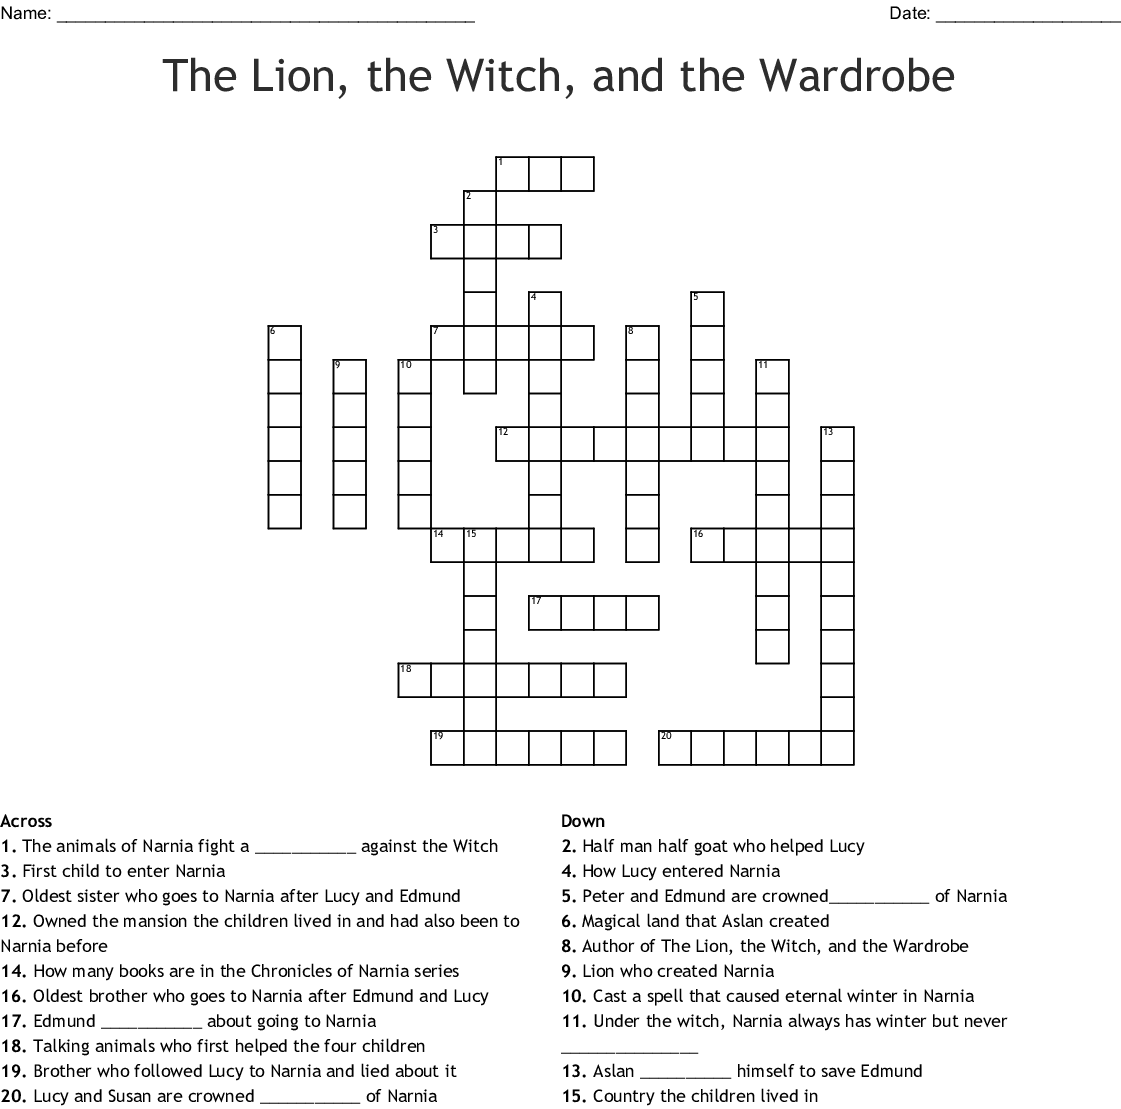 The Lion, The Witch, and The Wardrobe Word Search - WordMint